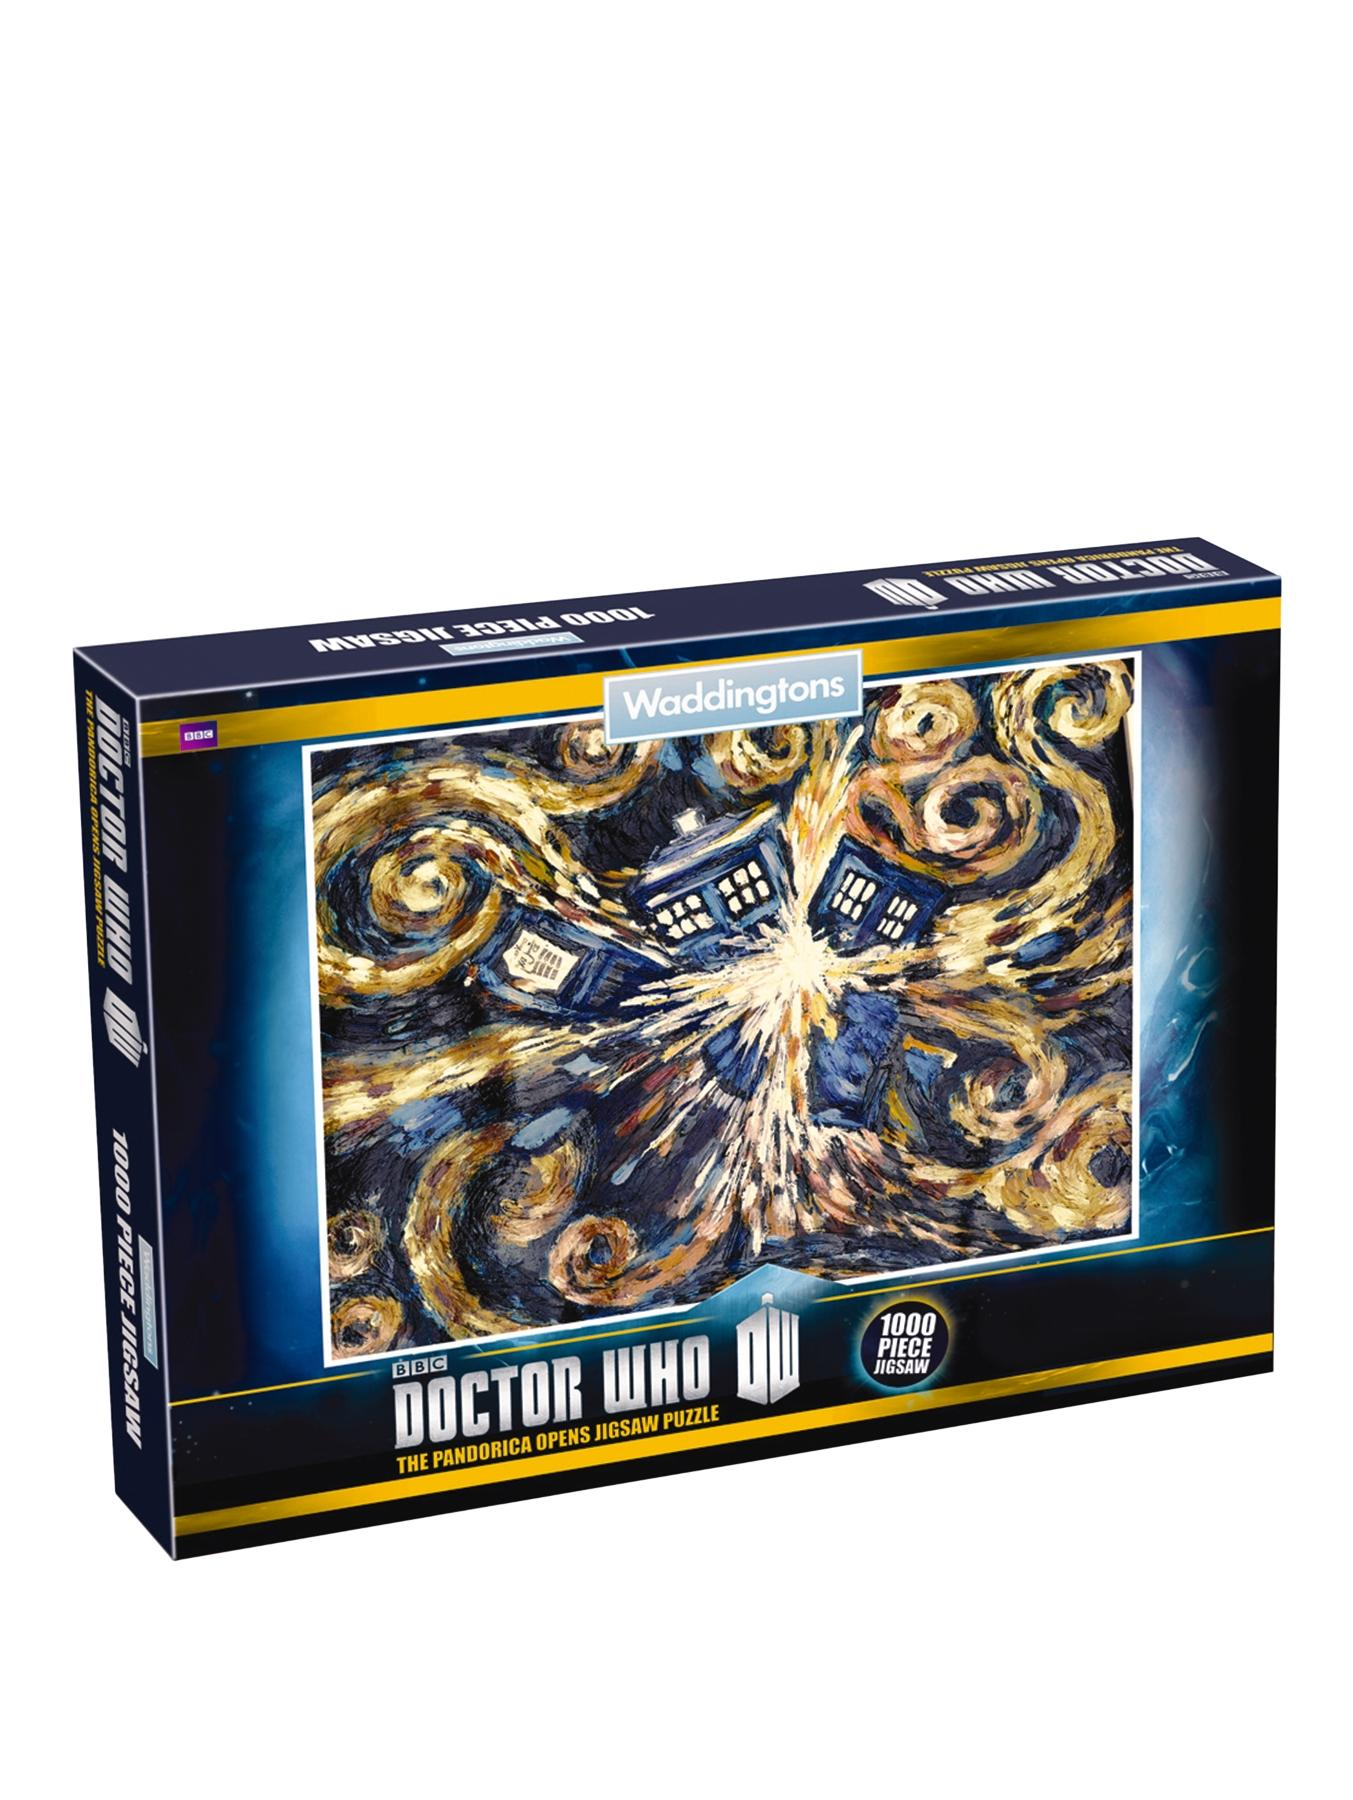 Doctor Who 50th anniversary 1000 piece jigsaw